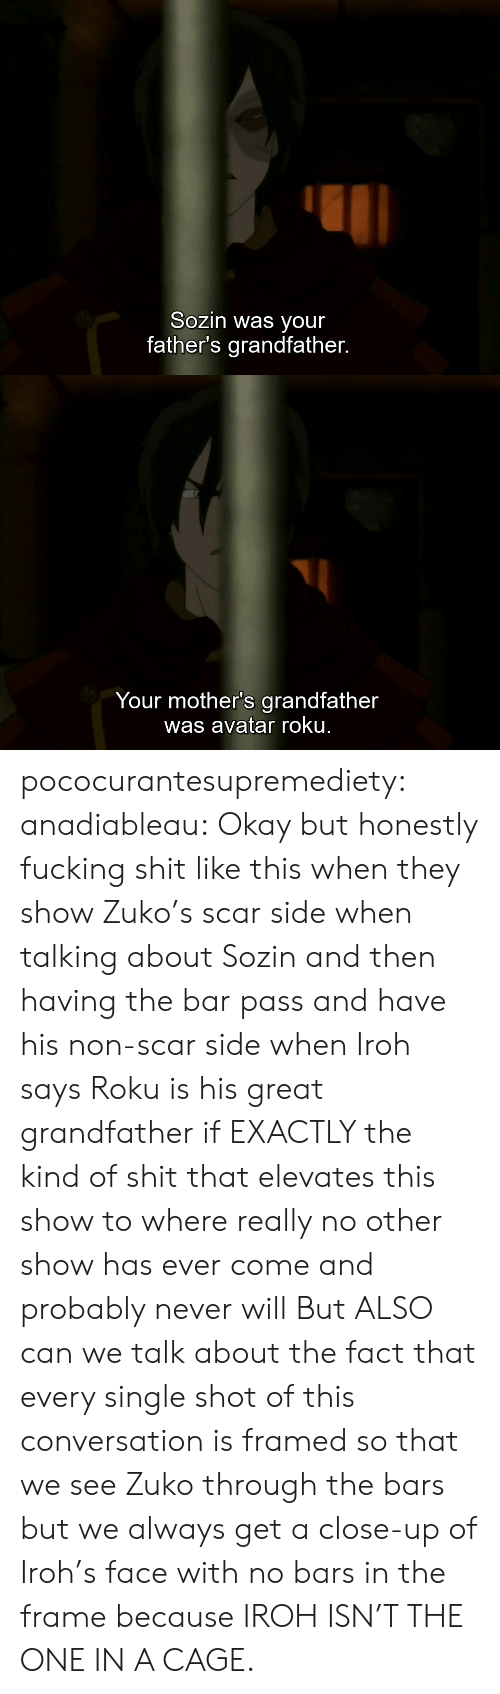 No Other: Sozin was your  father's grandfather.   Your mother's grandfather  was avatar roku. pococurantesupremediety: anadiableau: Okay but honestly fucking shit like this when they show Zuko's scar side when talking about Sozin and then having the bar pass and have his non-scar side when Iroh says Roku is his great grandfather if EXACTLY the kind of shit that elevates this show to where really no other show has ever come and probably never will But ALSO can we talk about the fact that every single shot of this conversation is framed so that we see Zuko through the bars but we always get a close-up of Iroh's face with no bars in the frame because IROH ISN'T THE ONE IN A CAGE.